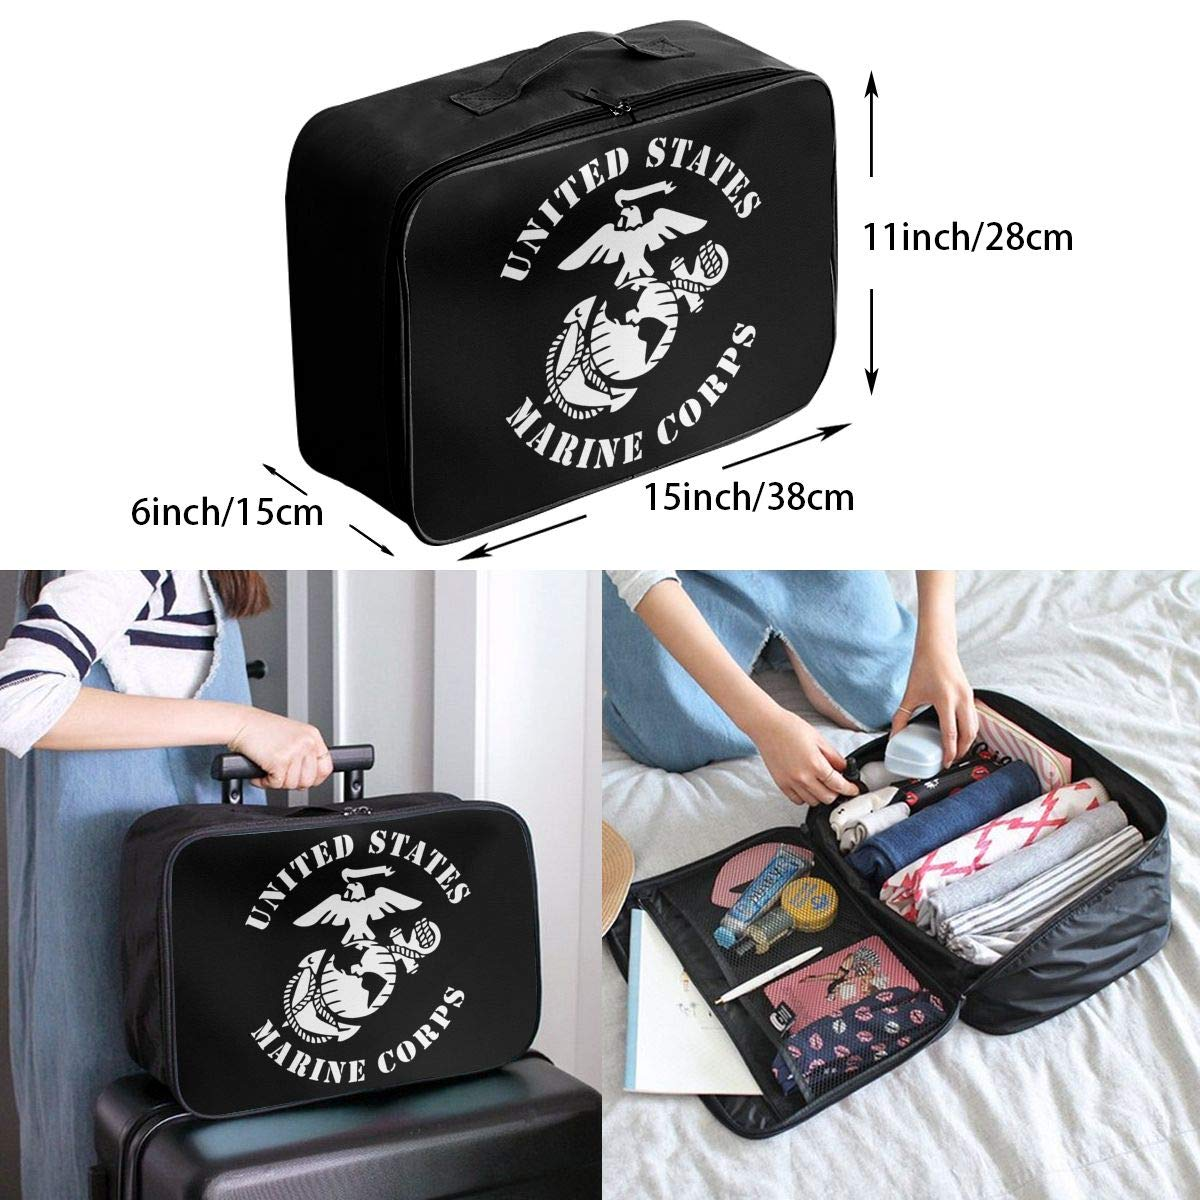 United States Marine Corps Travel Bag Men Women 3D Print Pattern Gift Portable Waterproof Oxford Cloth Bags